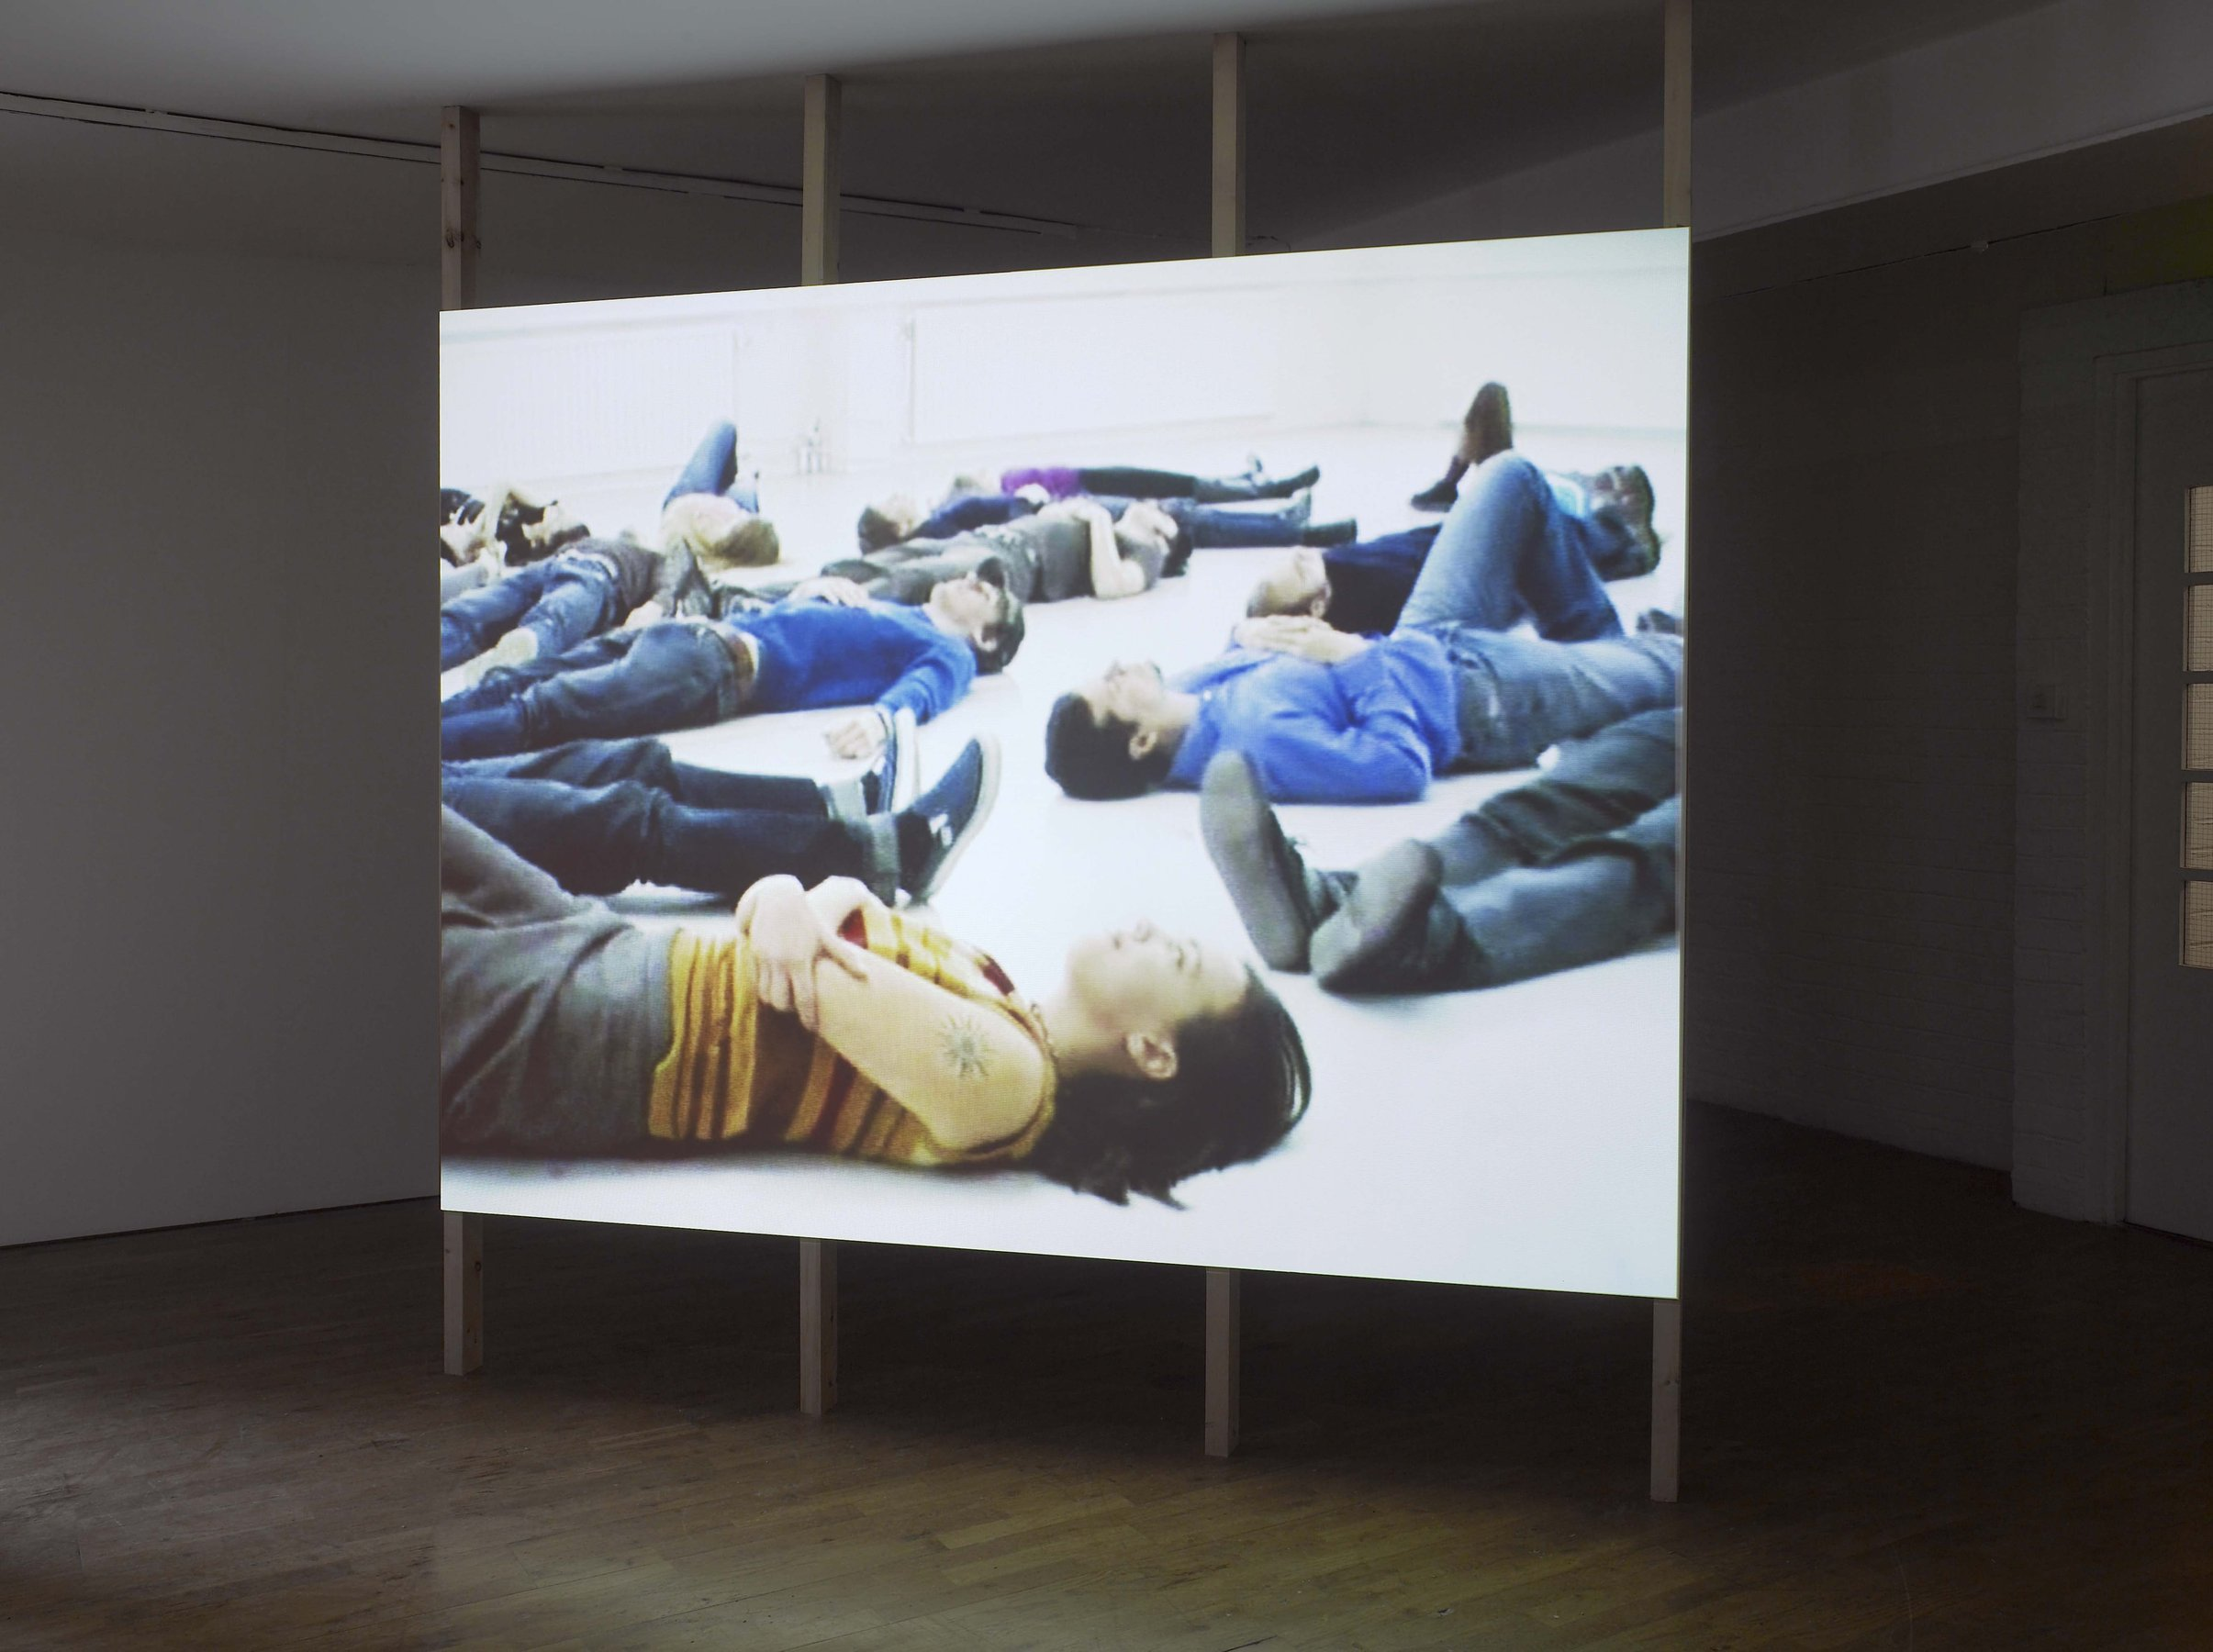 Missing Out, 2001, DV, 04'14'', loop, installation view, Modern Art Oxford, 2010